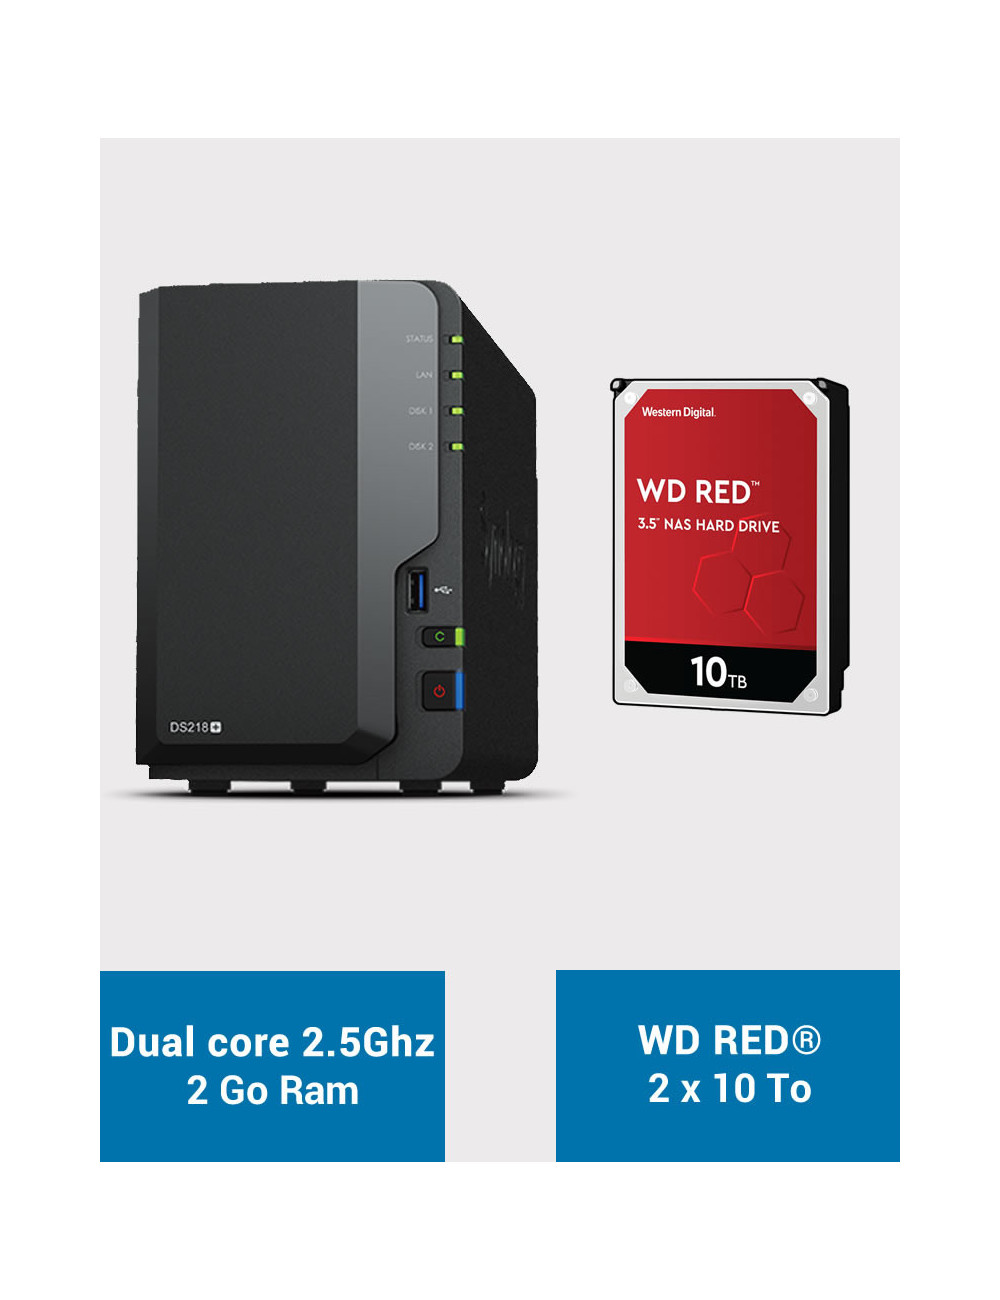 Synology DS218+ NAS Server WD RED 20To (2x10To)